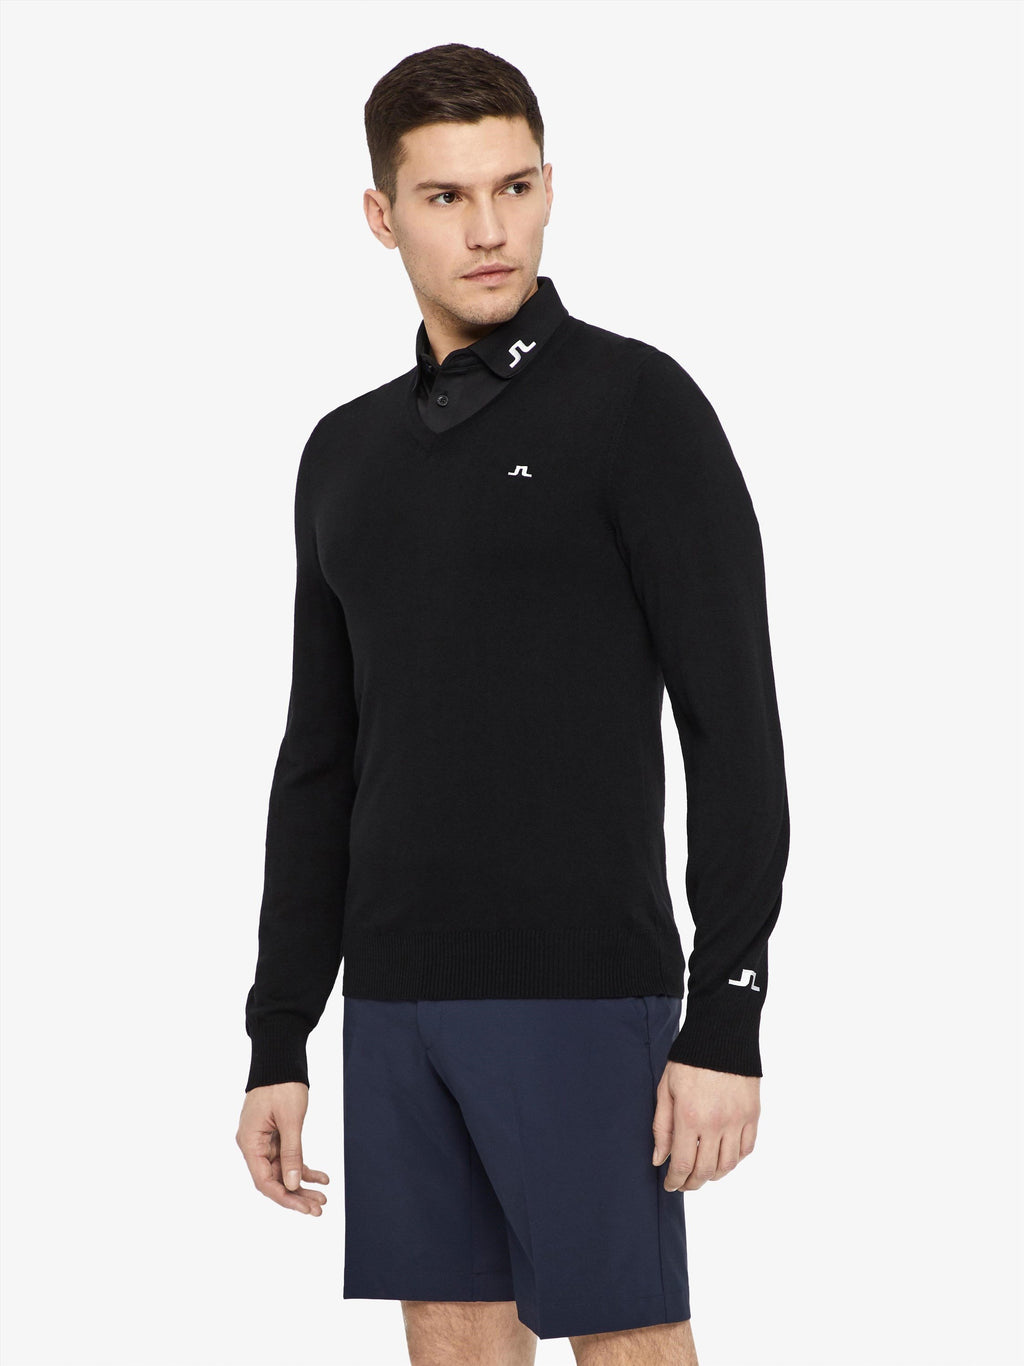 J LINDEBERG LYMANN TOUR MERINO MEN'S GOLF SWEATER - Miami Golf